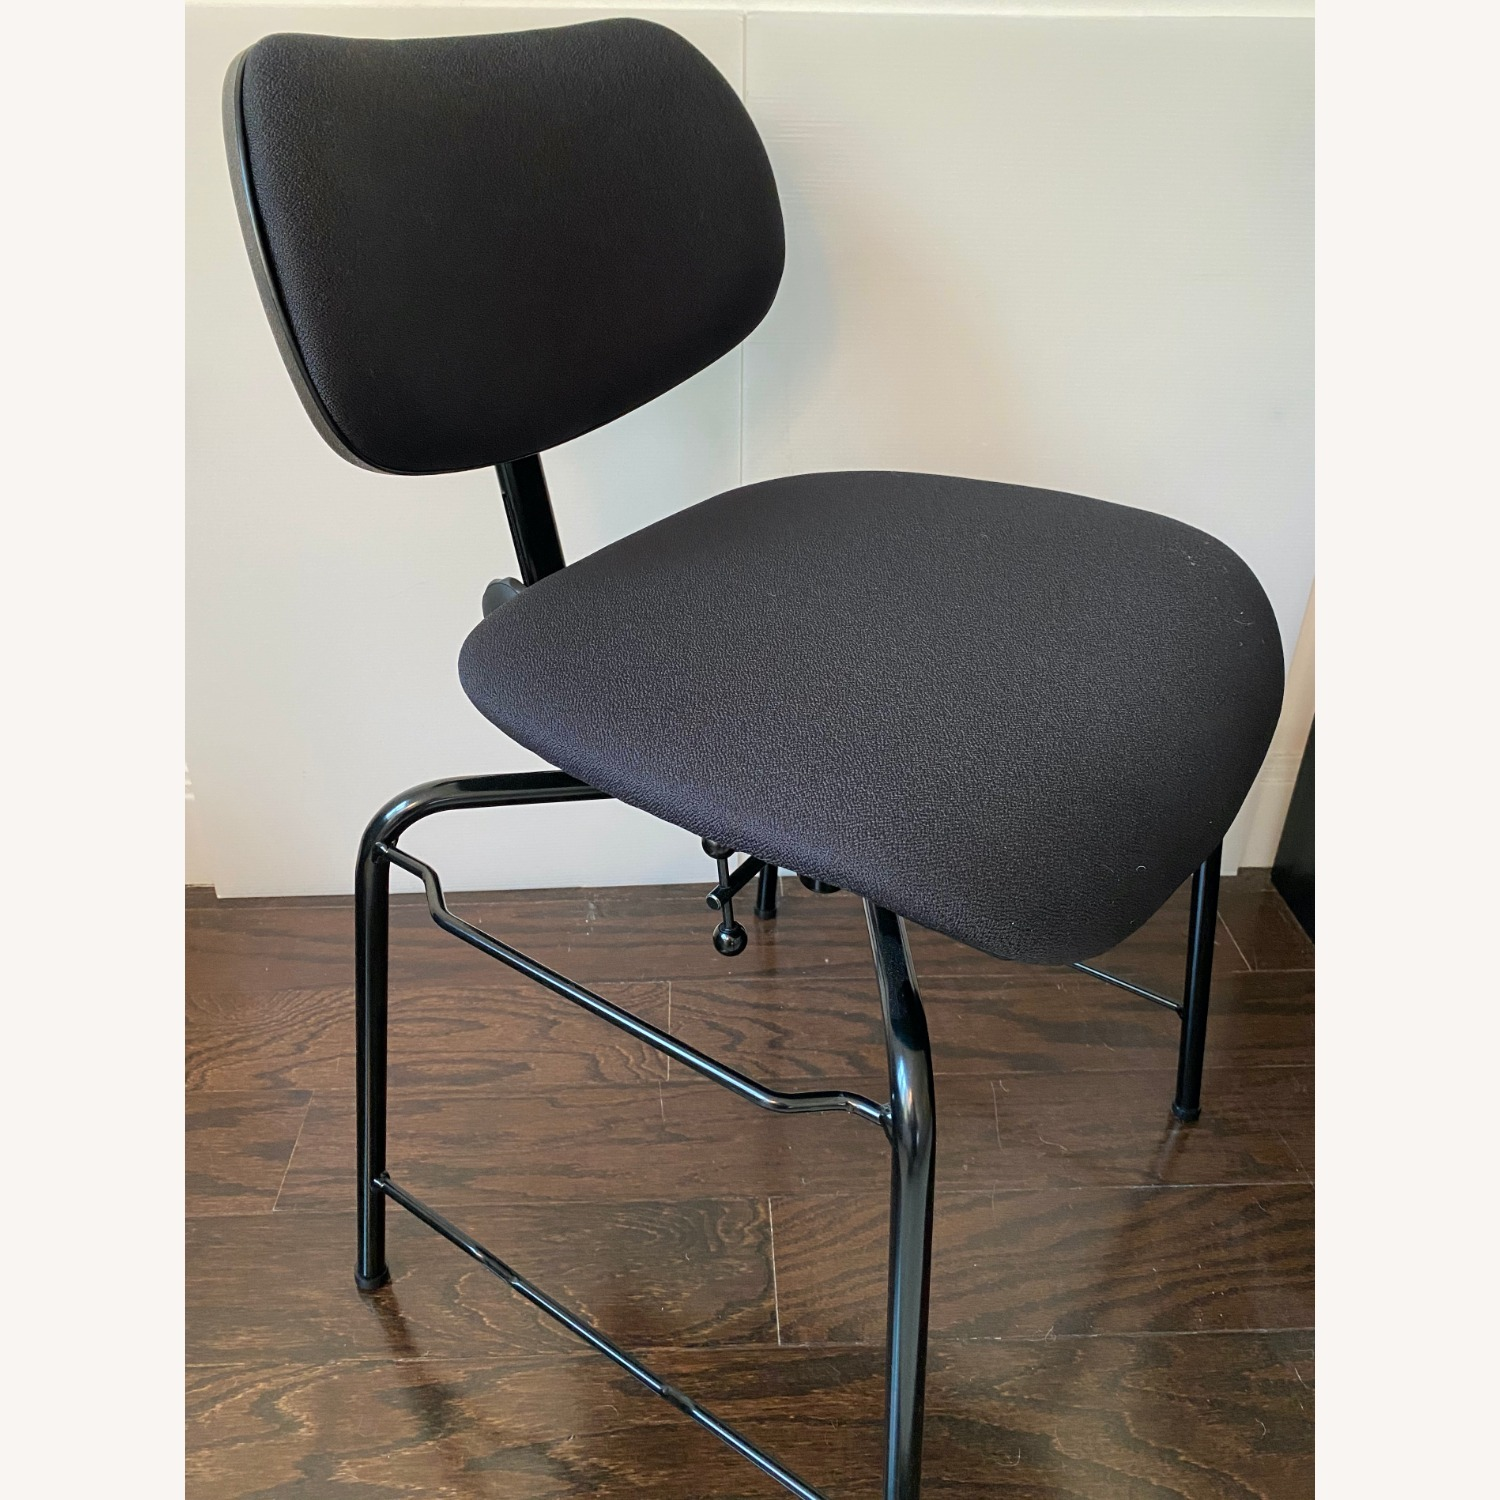 "Wilde + Spieth ""Orchestra"" Chair Black - image-9"